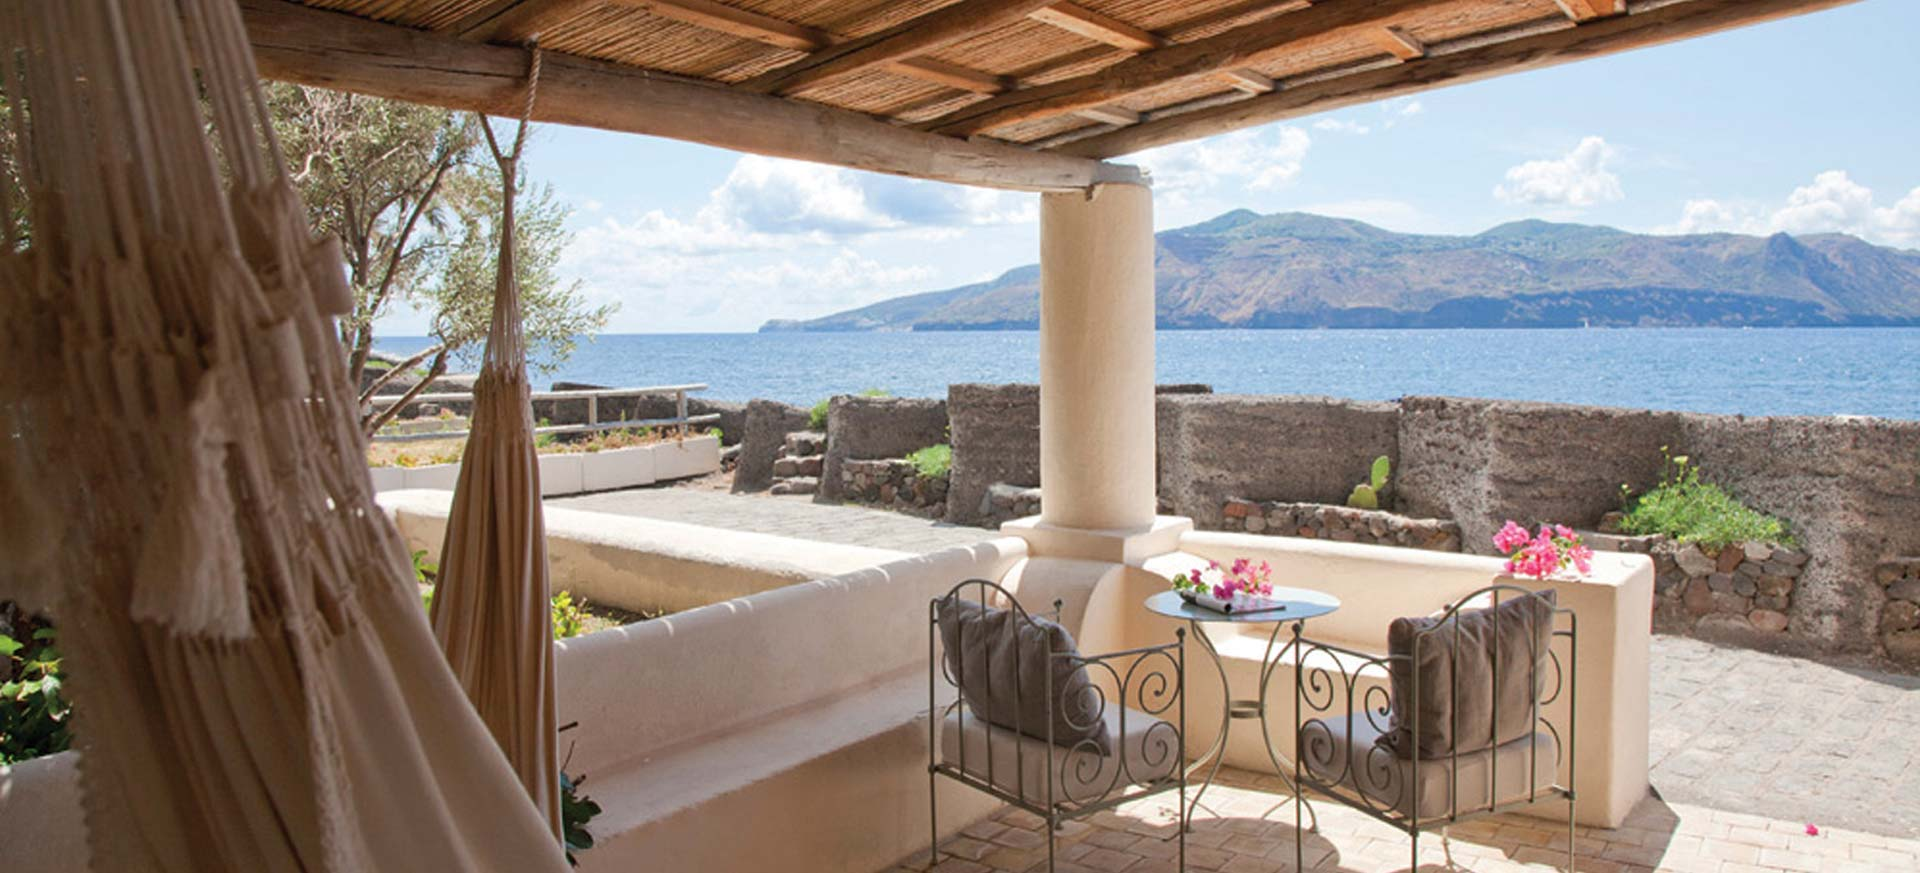 Luxury hotel Salina - Aeolian Islands